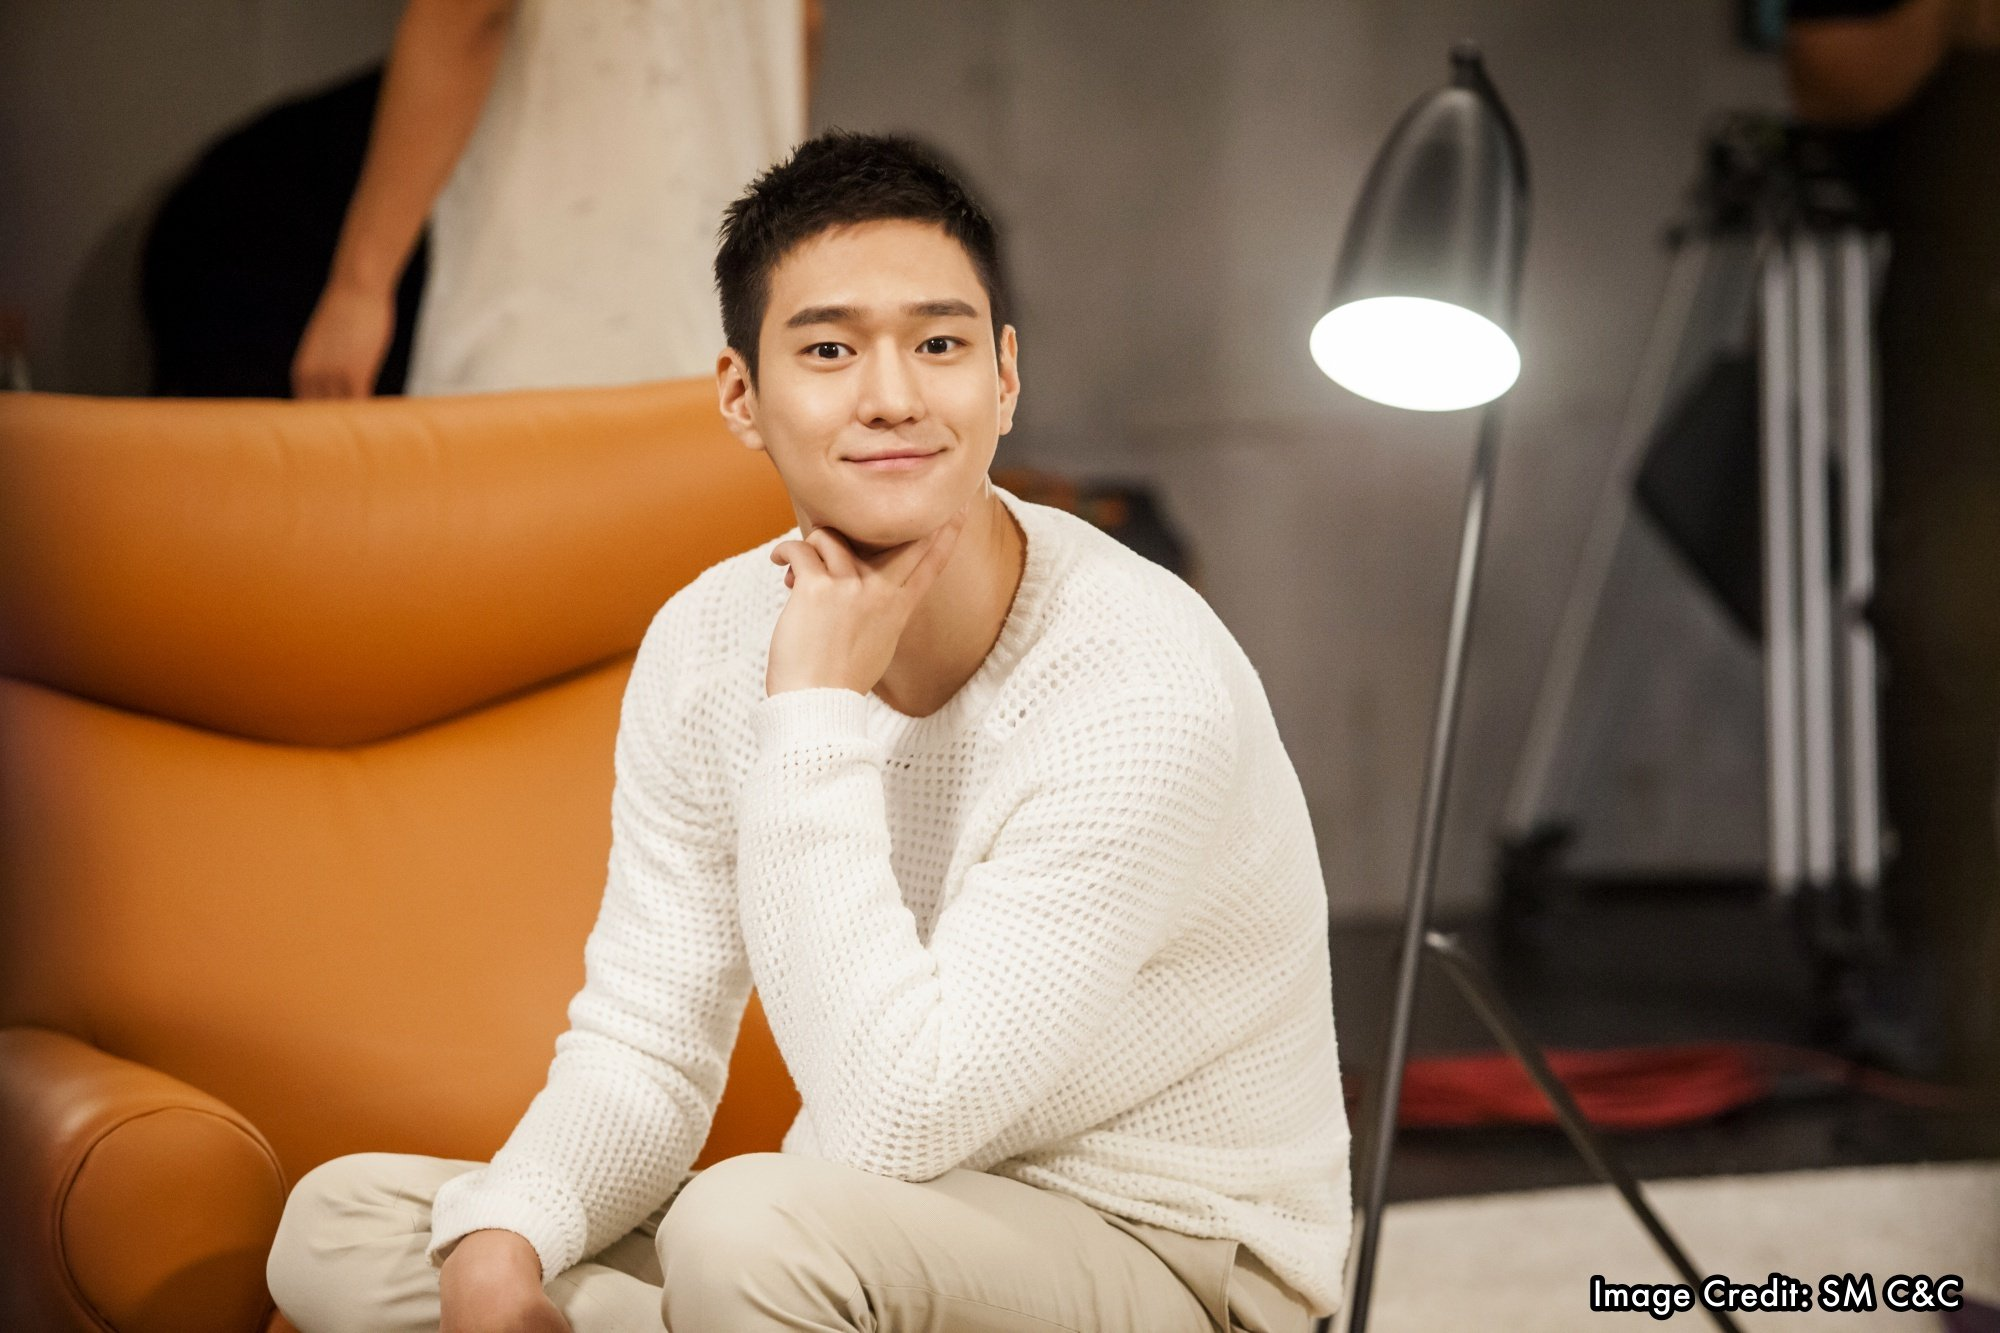 INTERVIEW] Ko Kyung Pyo Shares New Year Resolutions + WIN Tickets To